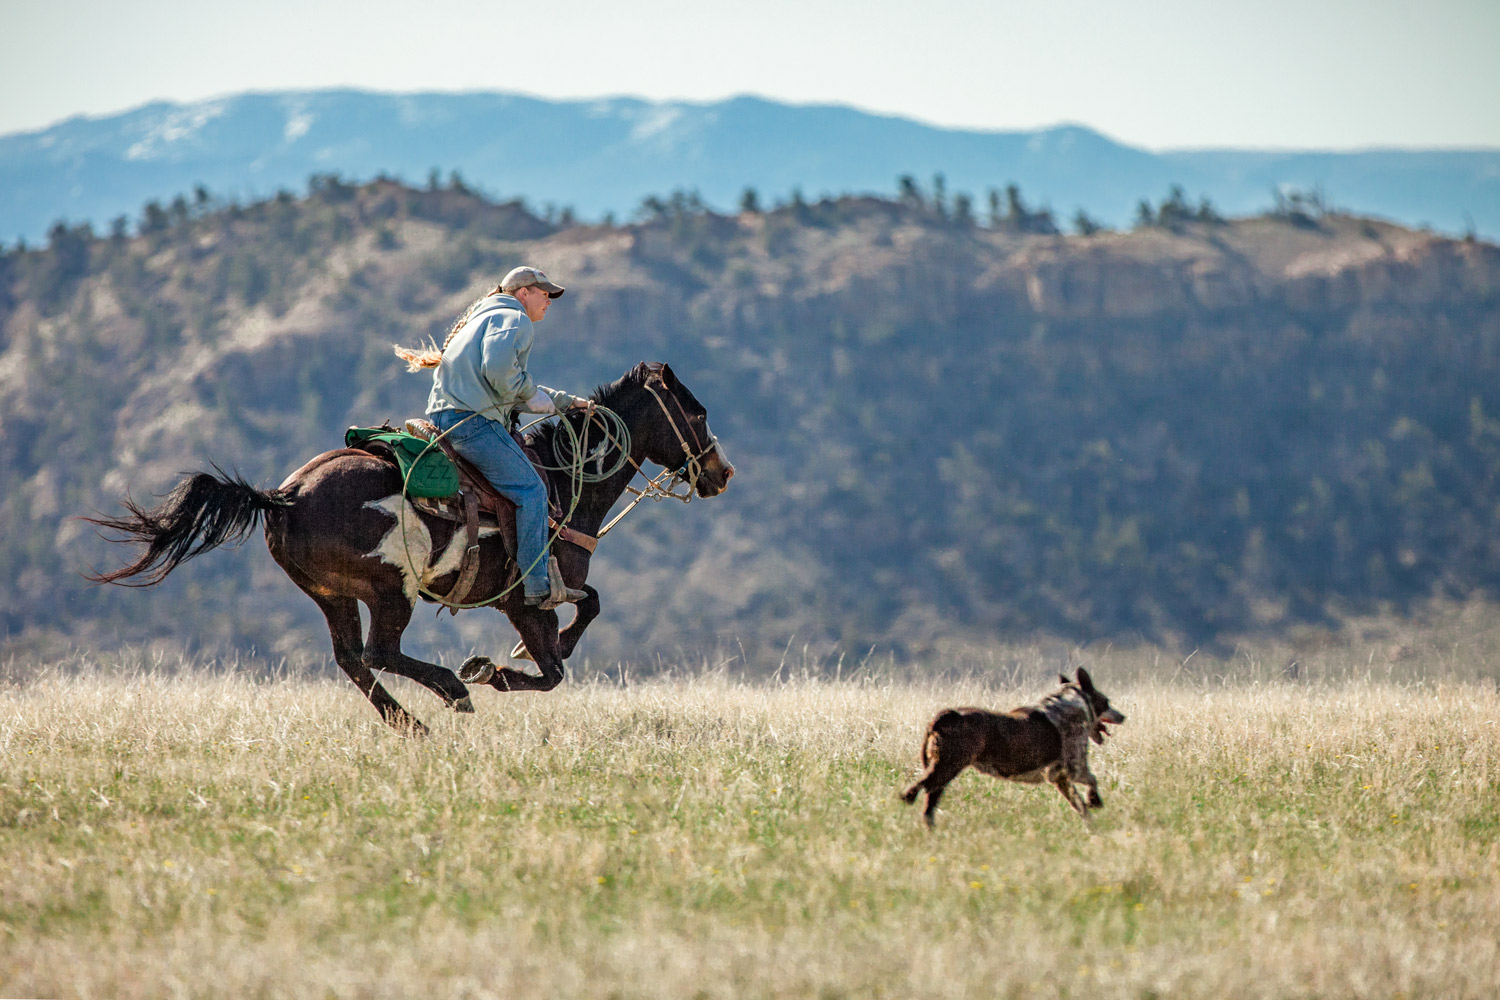 Gail Malsam of Chinook races across the prairie on her horse Chance chasing after some cows that separated from the herd.   → License Photo